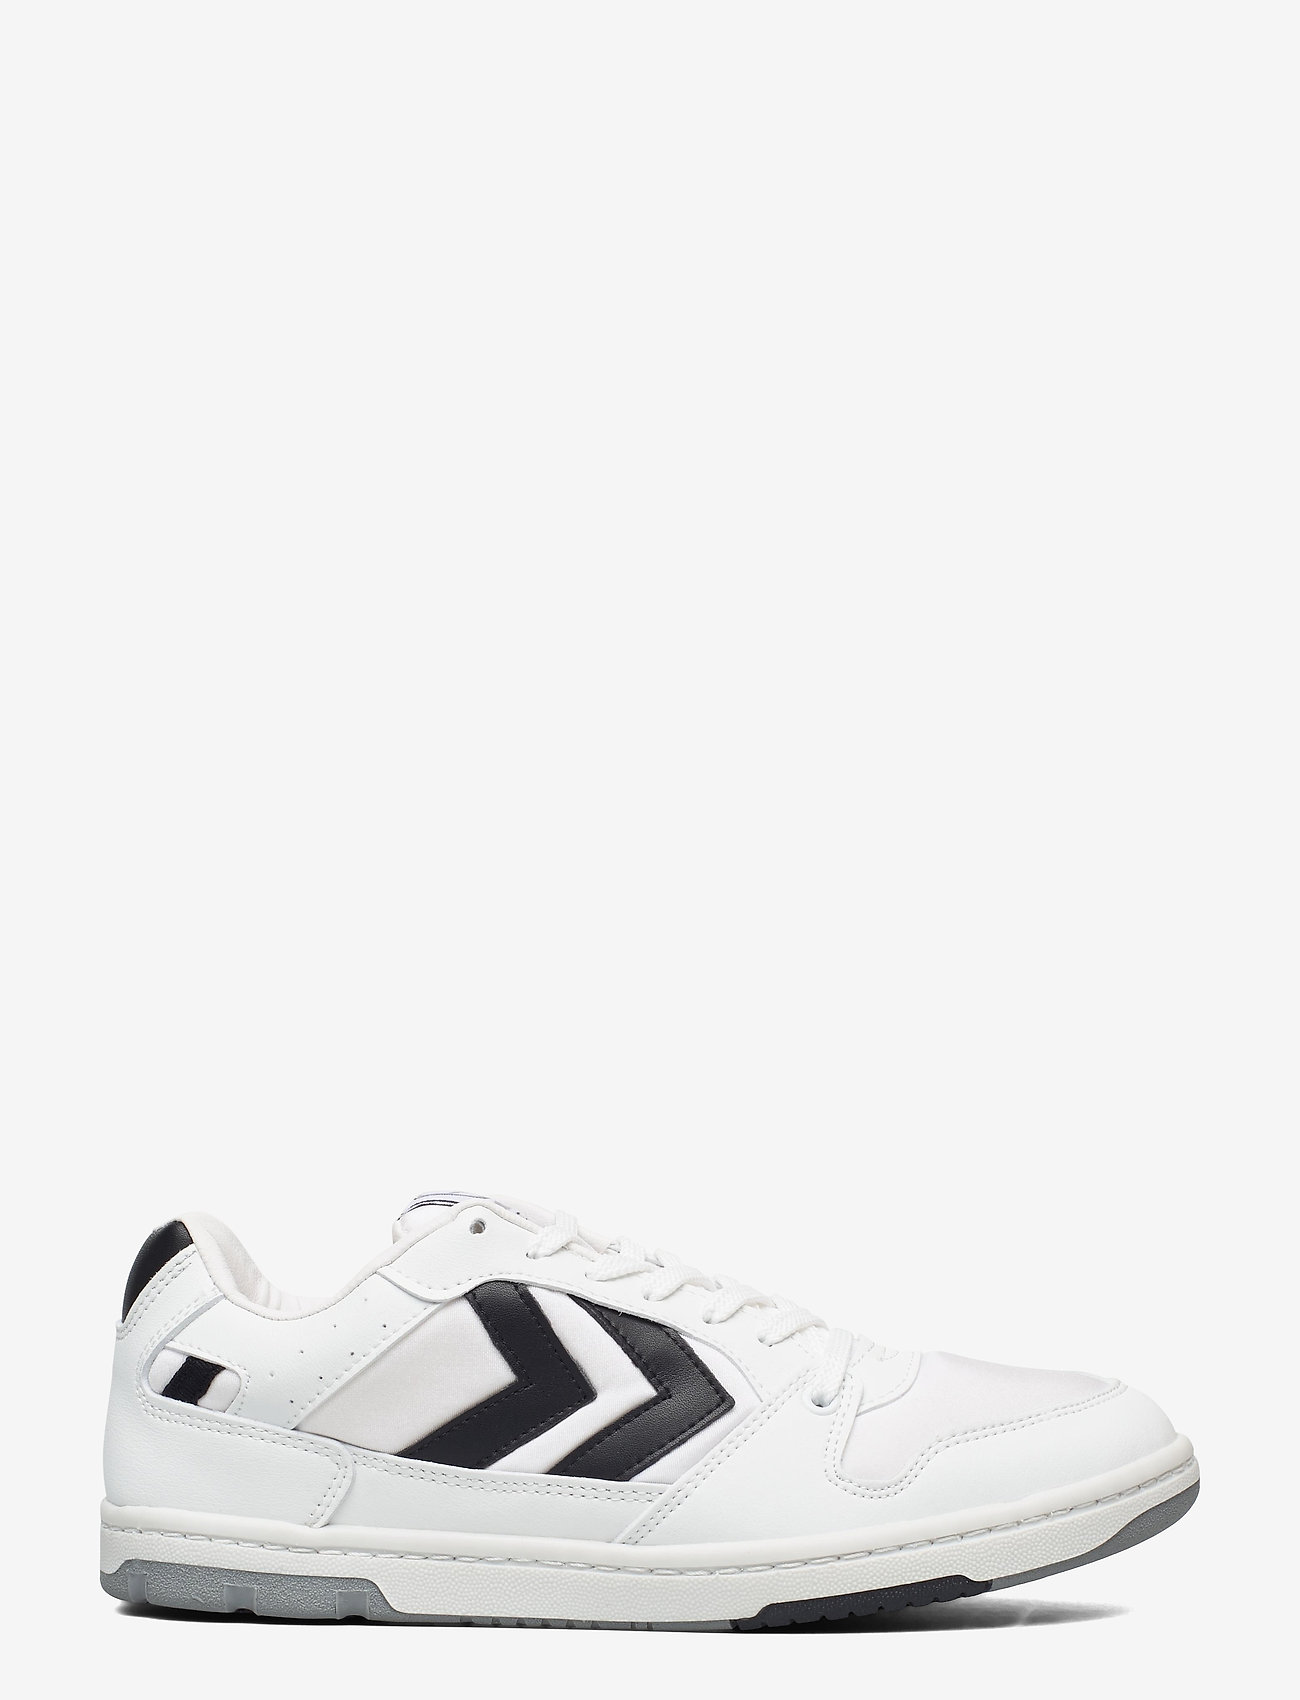 Hummel - POWER PLAY VEGAN ARCHIVE - laag sneakers - white/anthracite - 0